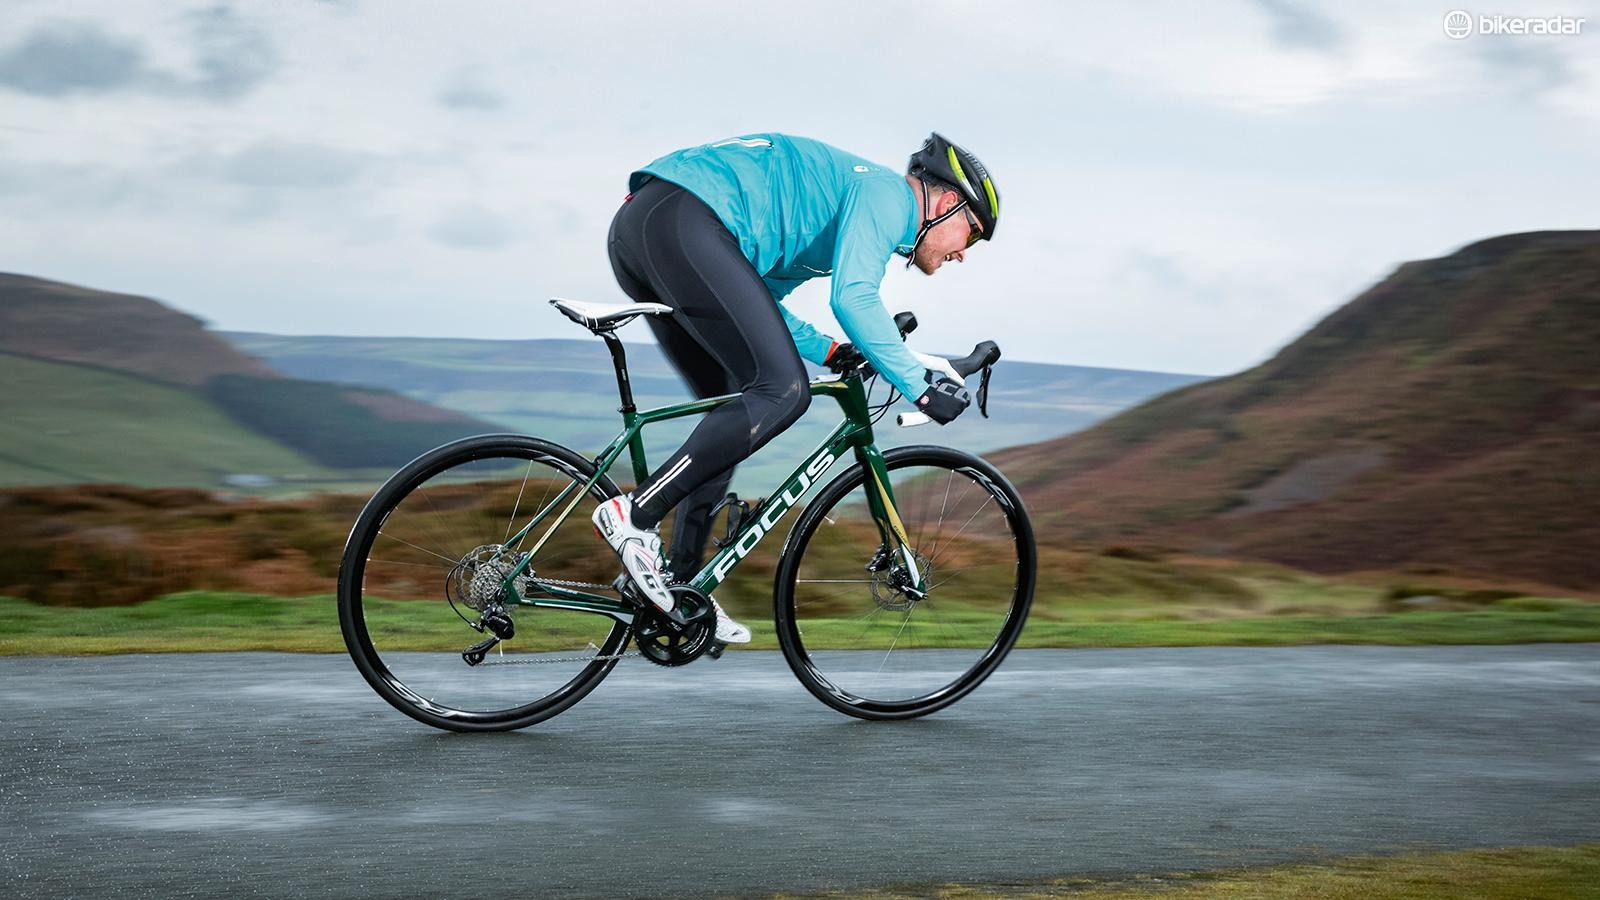 The Paralane Carbon 105 is well suited to putting in big miles